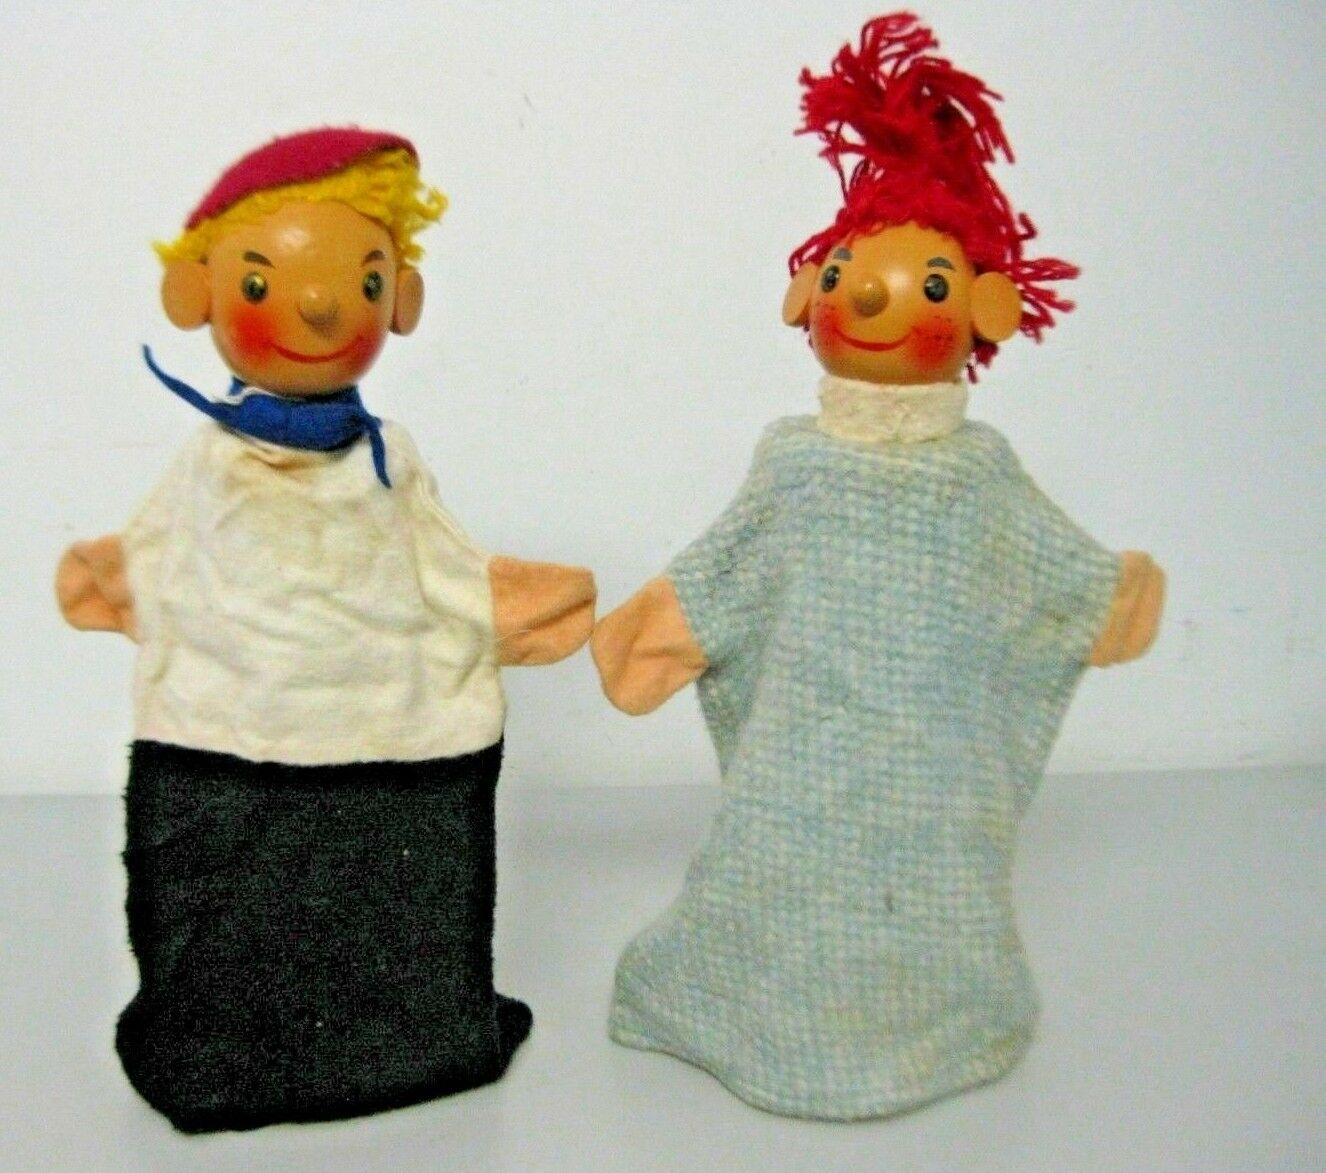 Vintage Son and Daughter Wooden Head Hand Puppets Fabric Bodies Set of 2